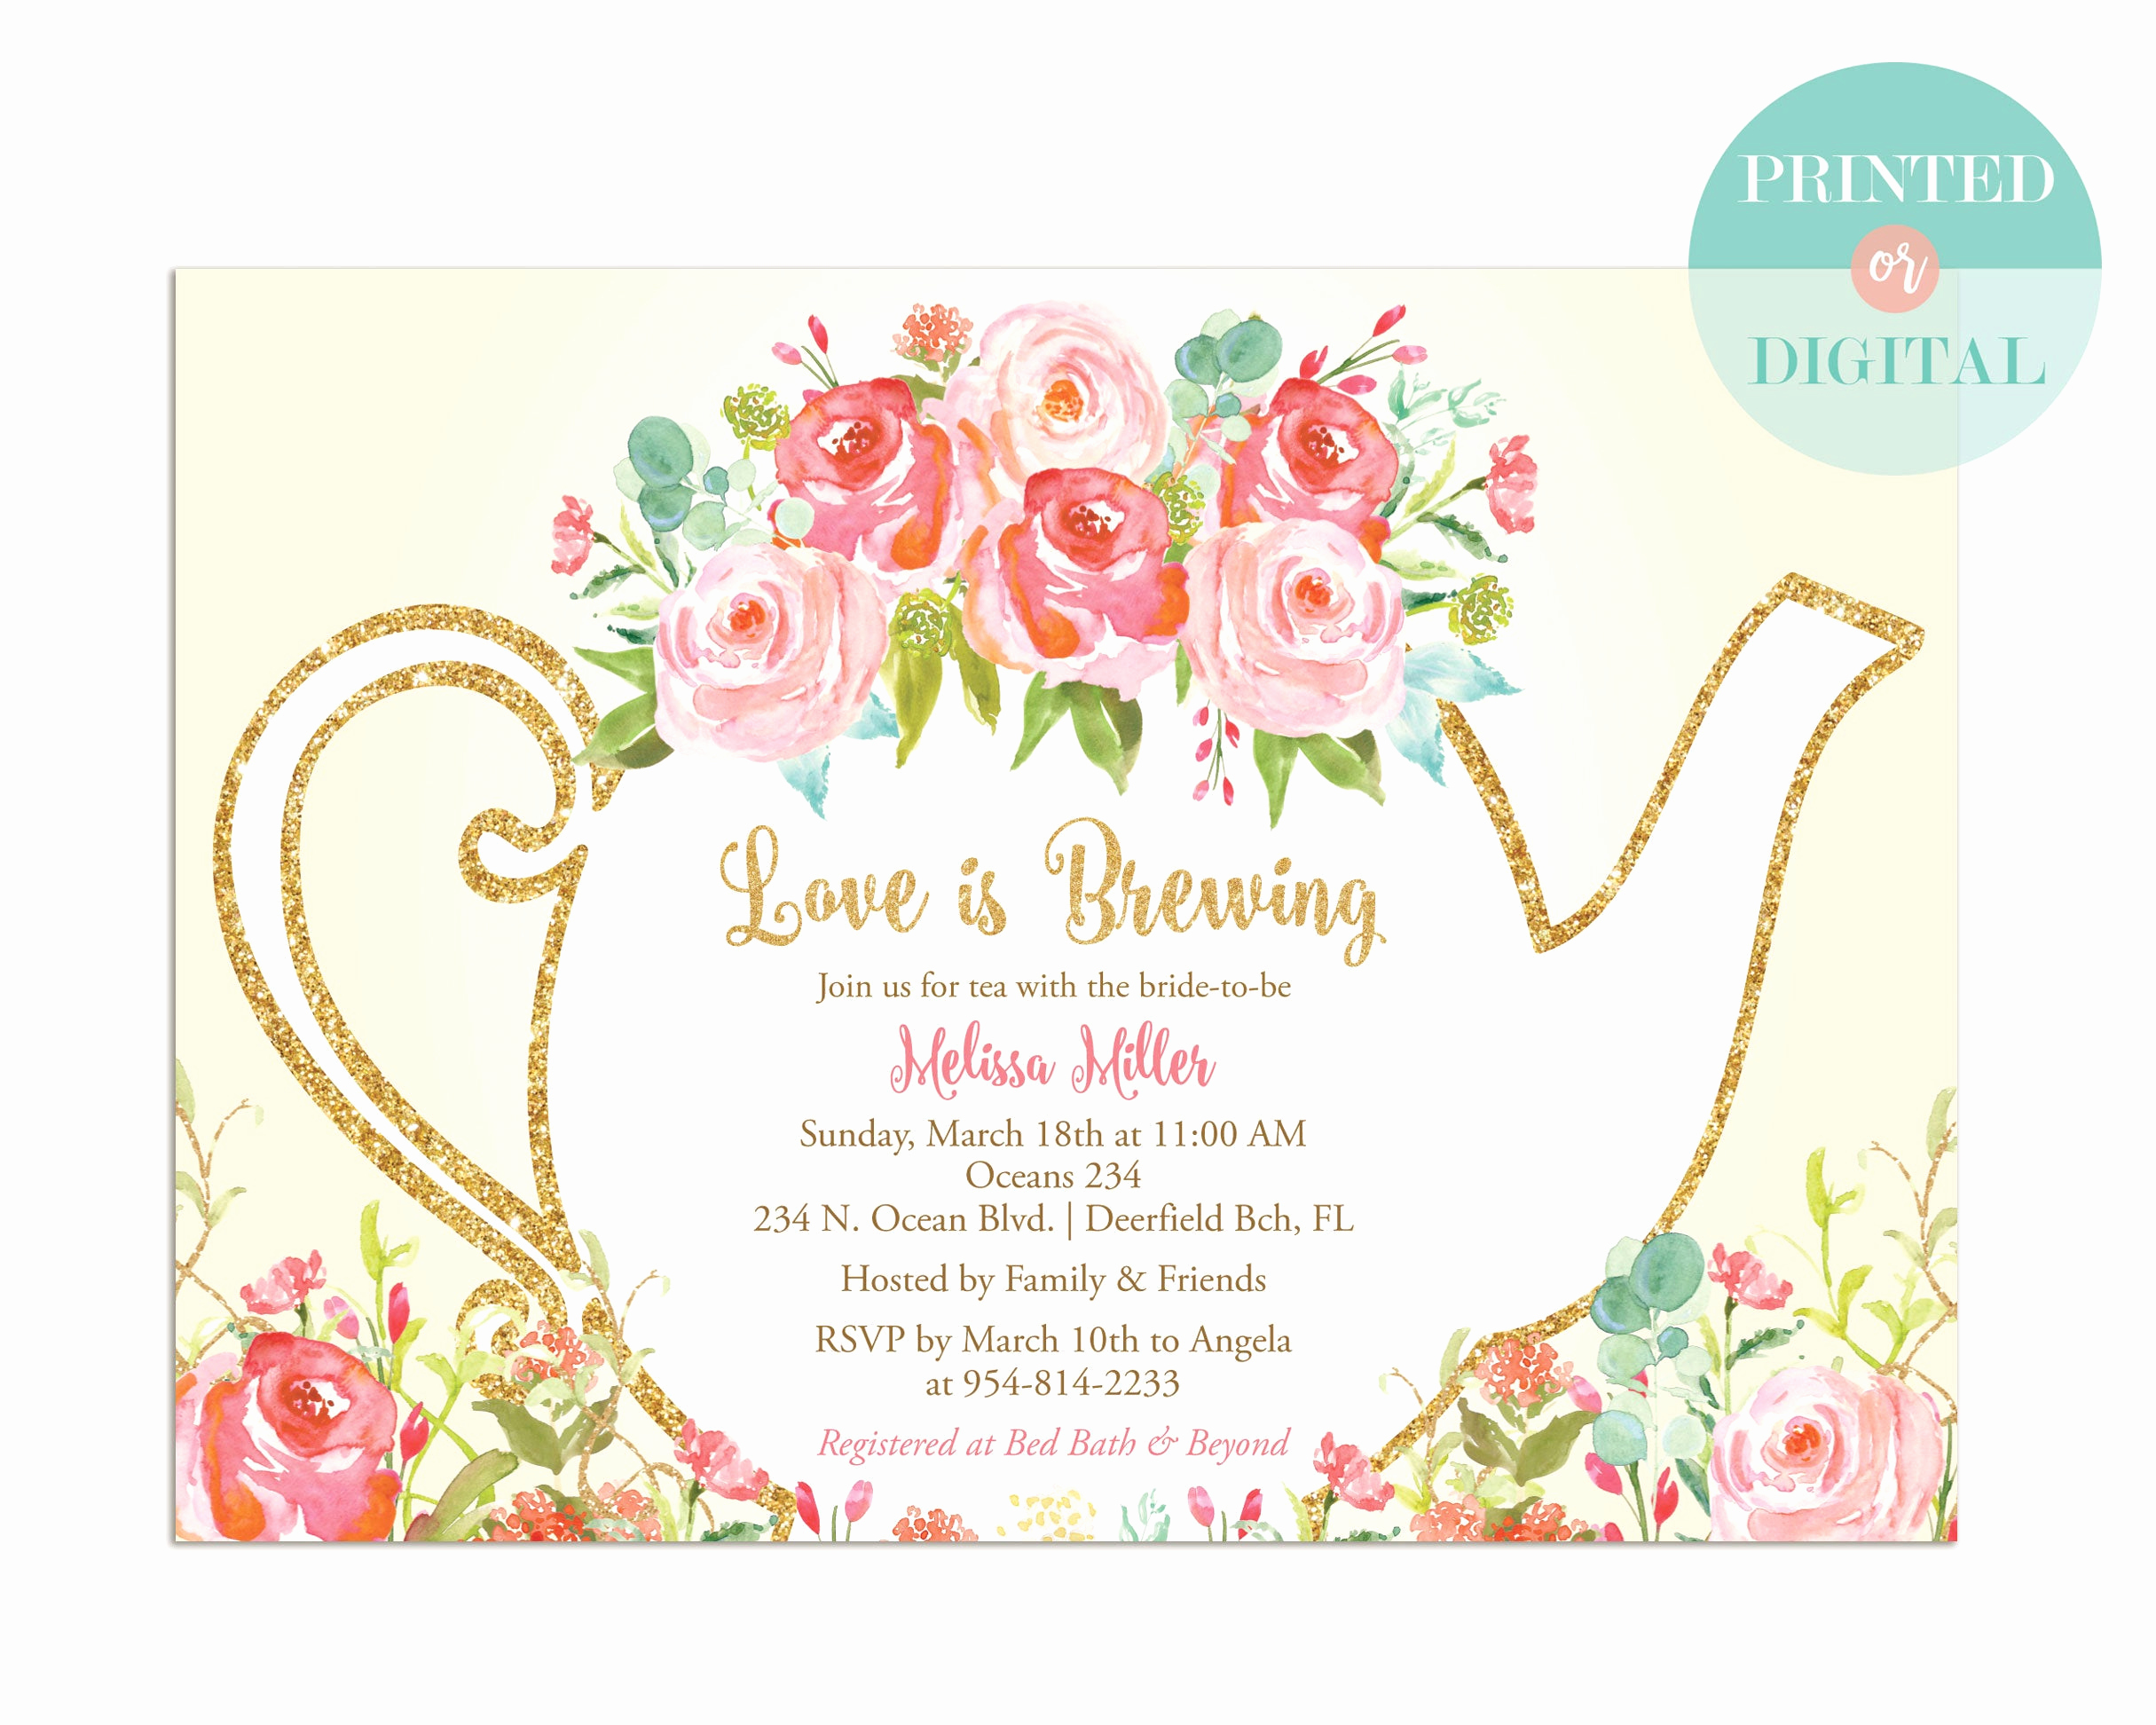 Invitation for Tea Party Lovely Bridal Shower Tea Party Invitation Printed or Digital